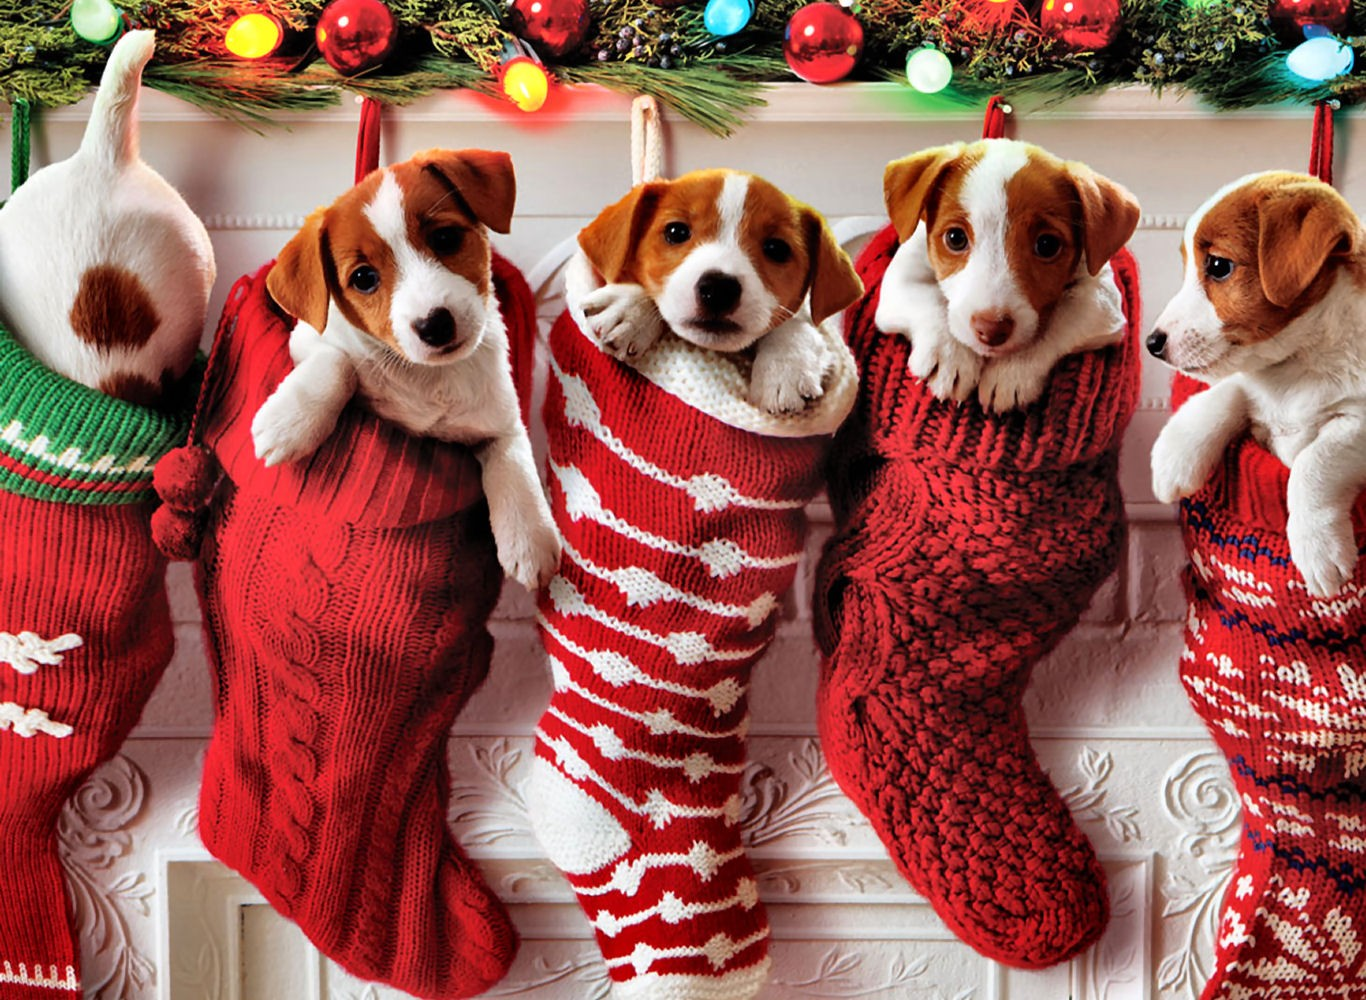 Dogs-Puppy-cats-Animals-Christmas-Photos-Images.jpg